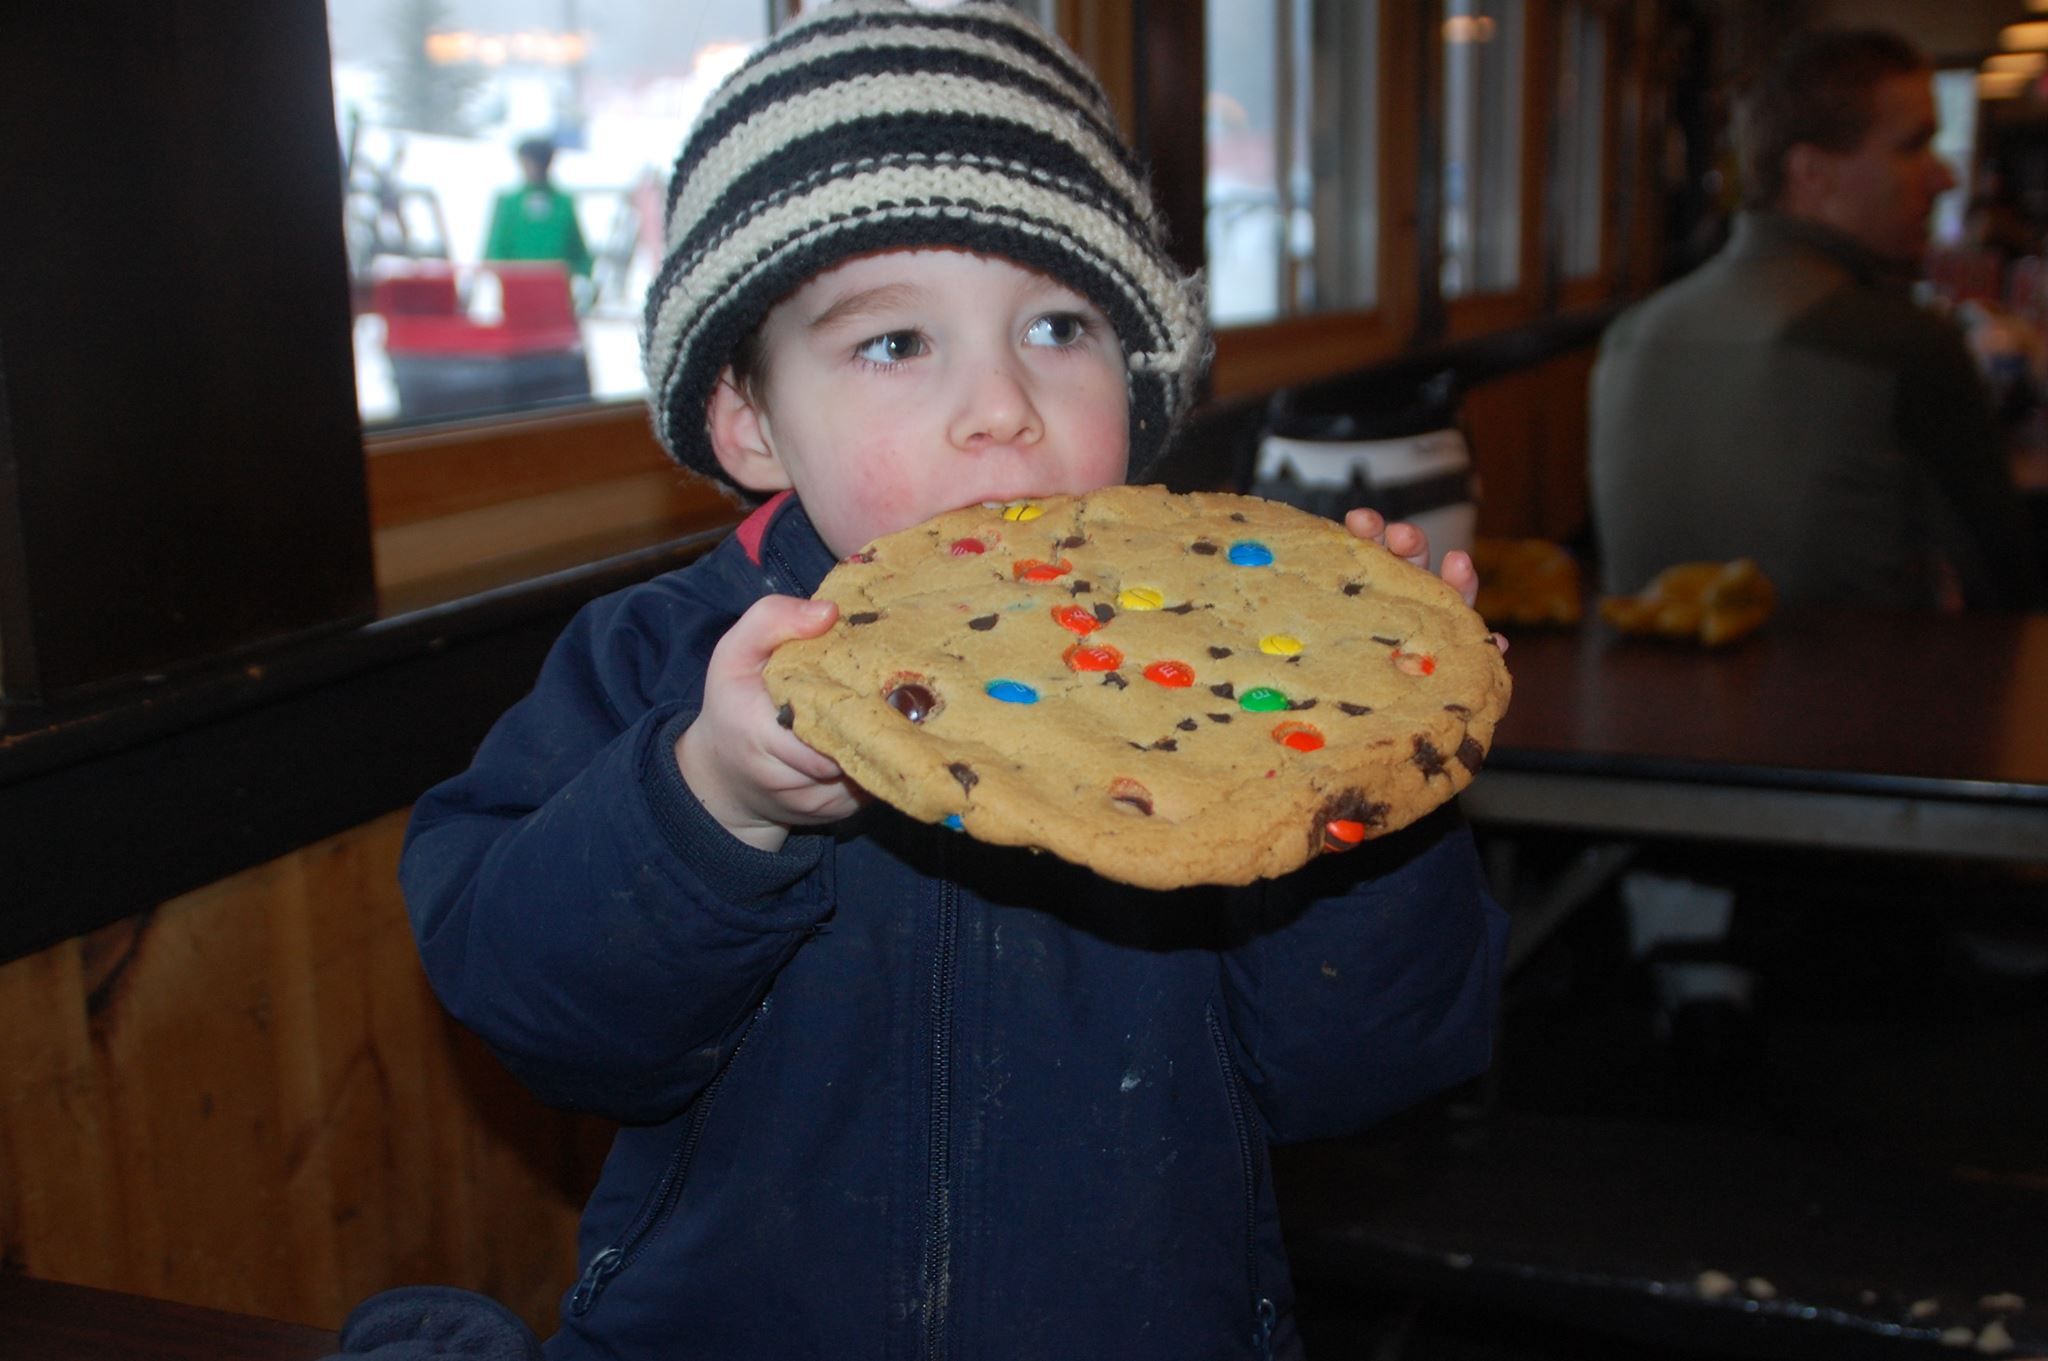 Three year old eats an M&M cookie that's bigger than his head